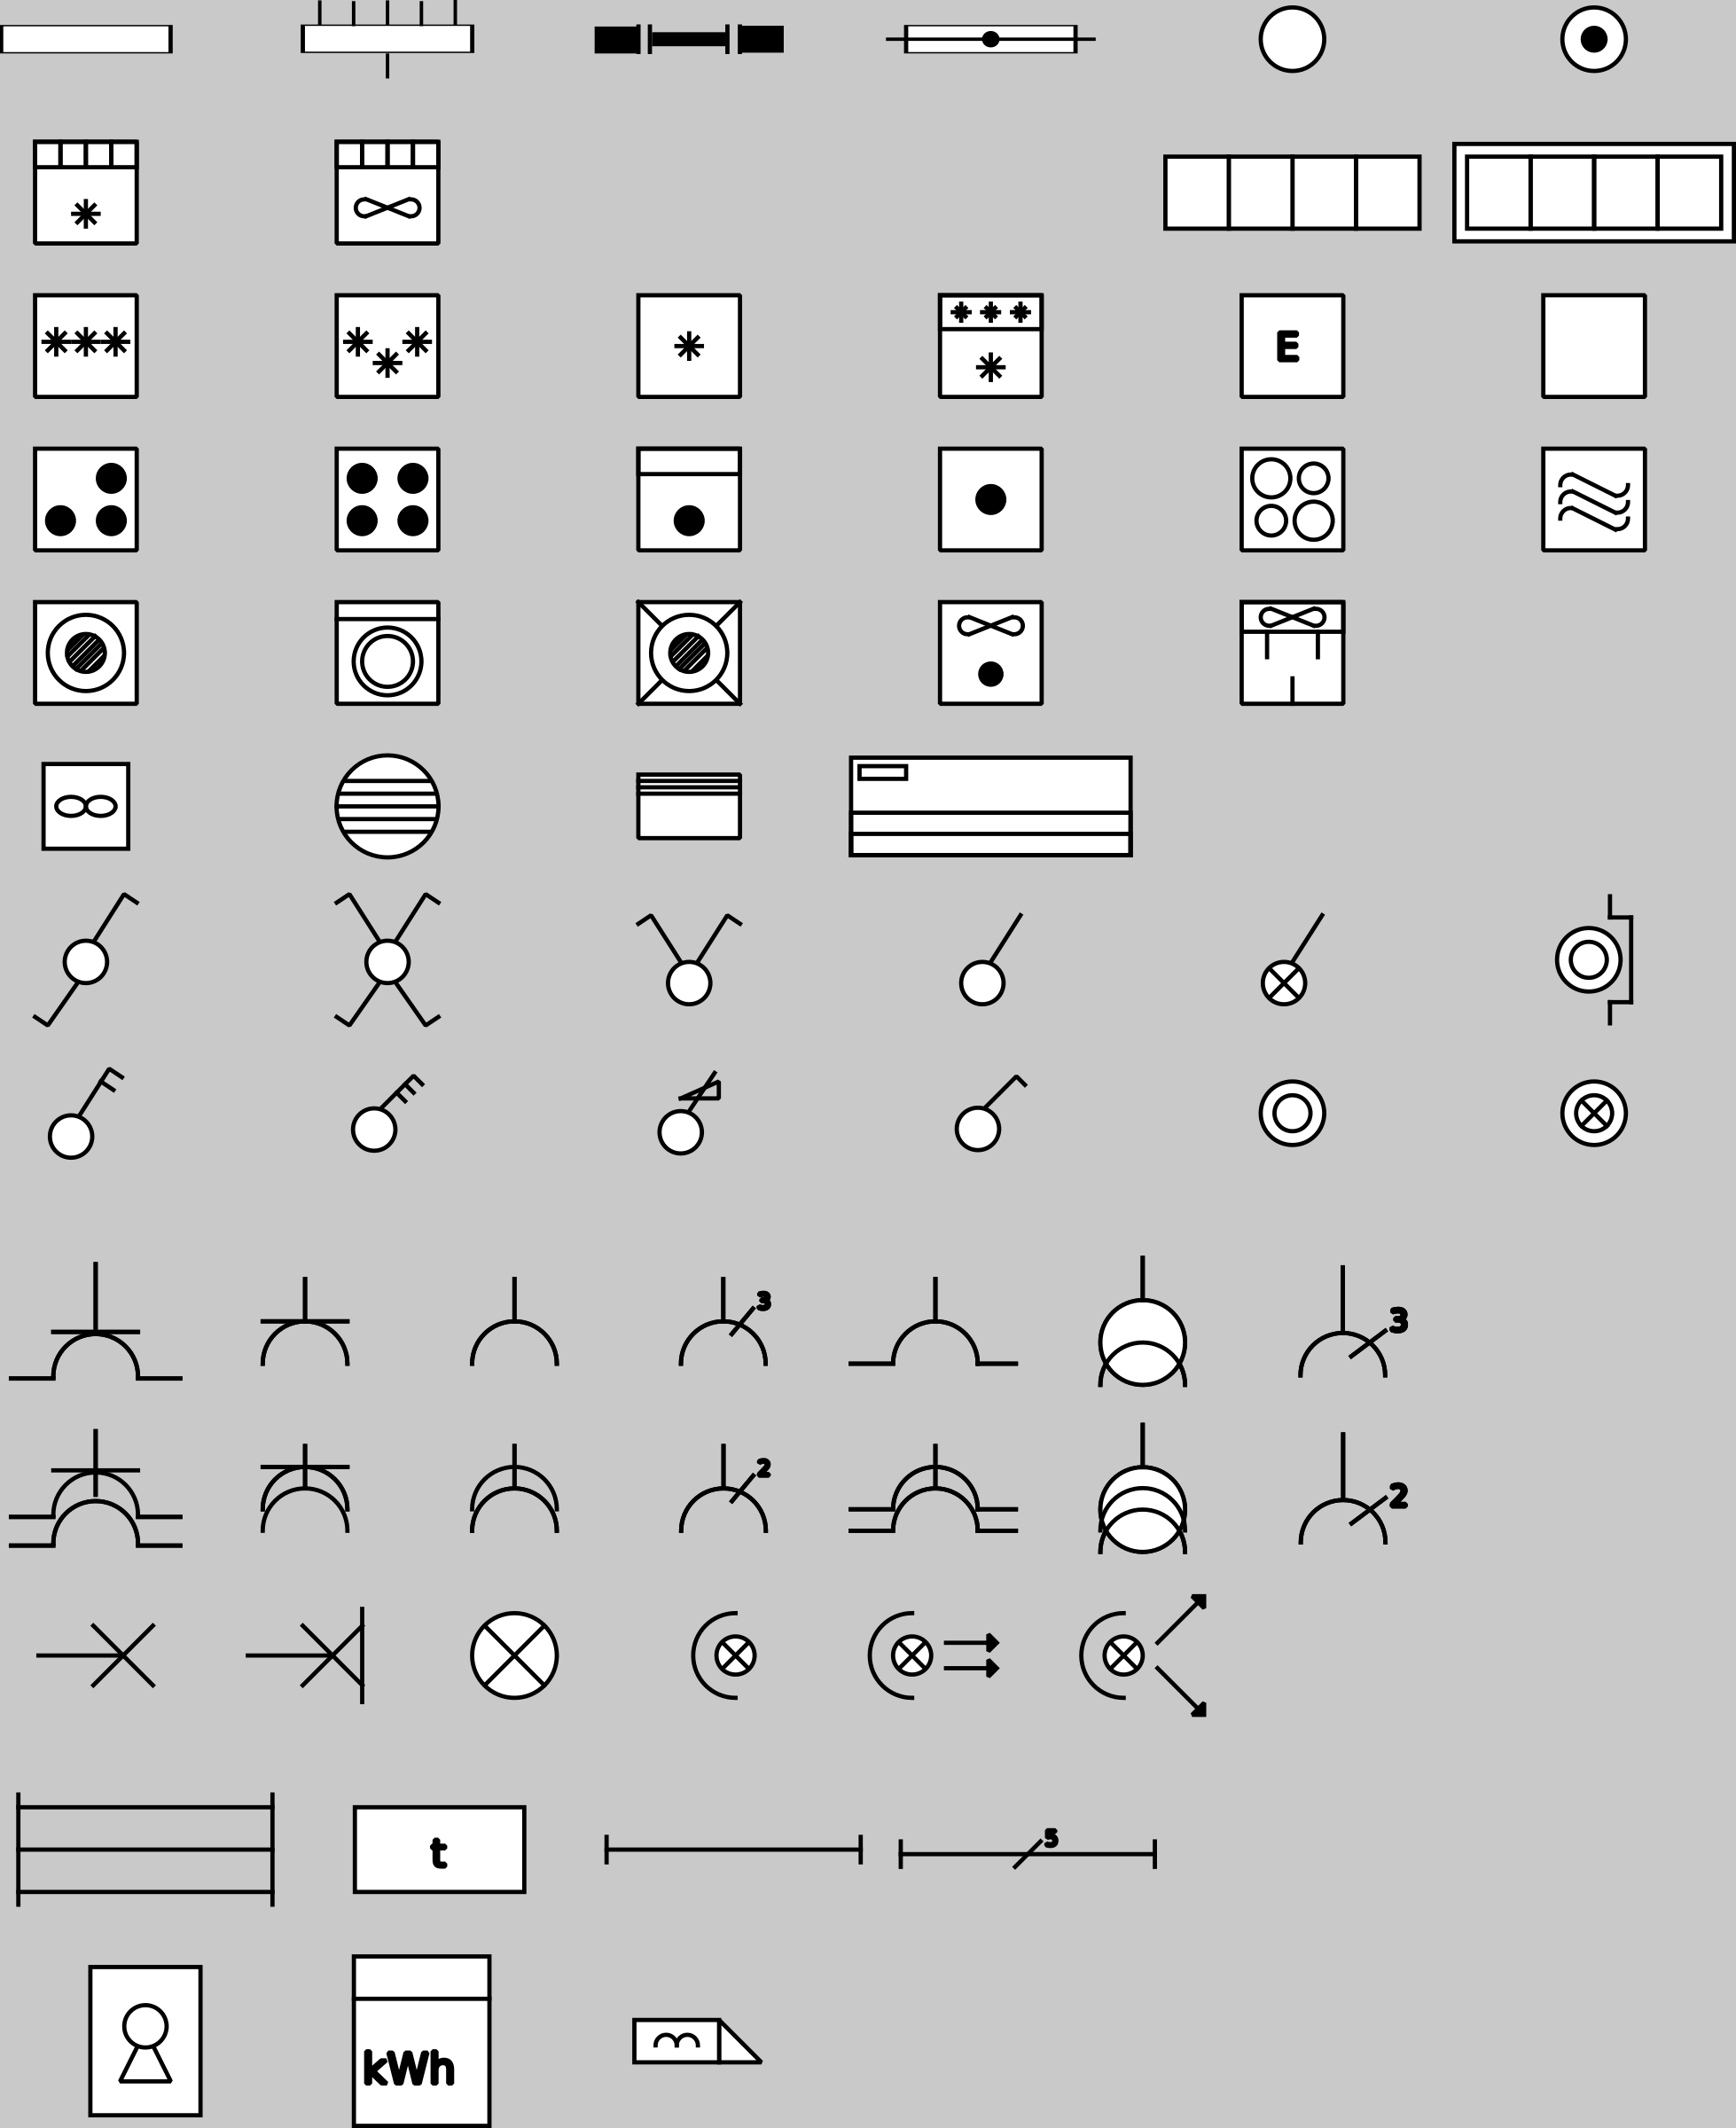 Apple keyboard symbols meaning aol image search results biocorpaavc Gallery